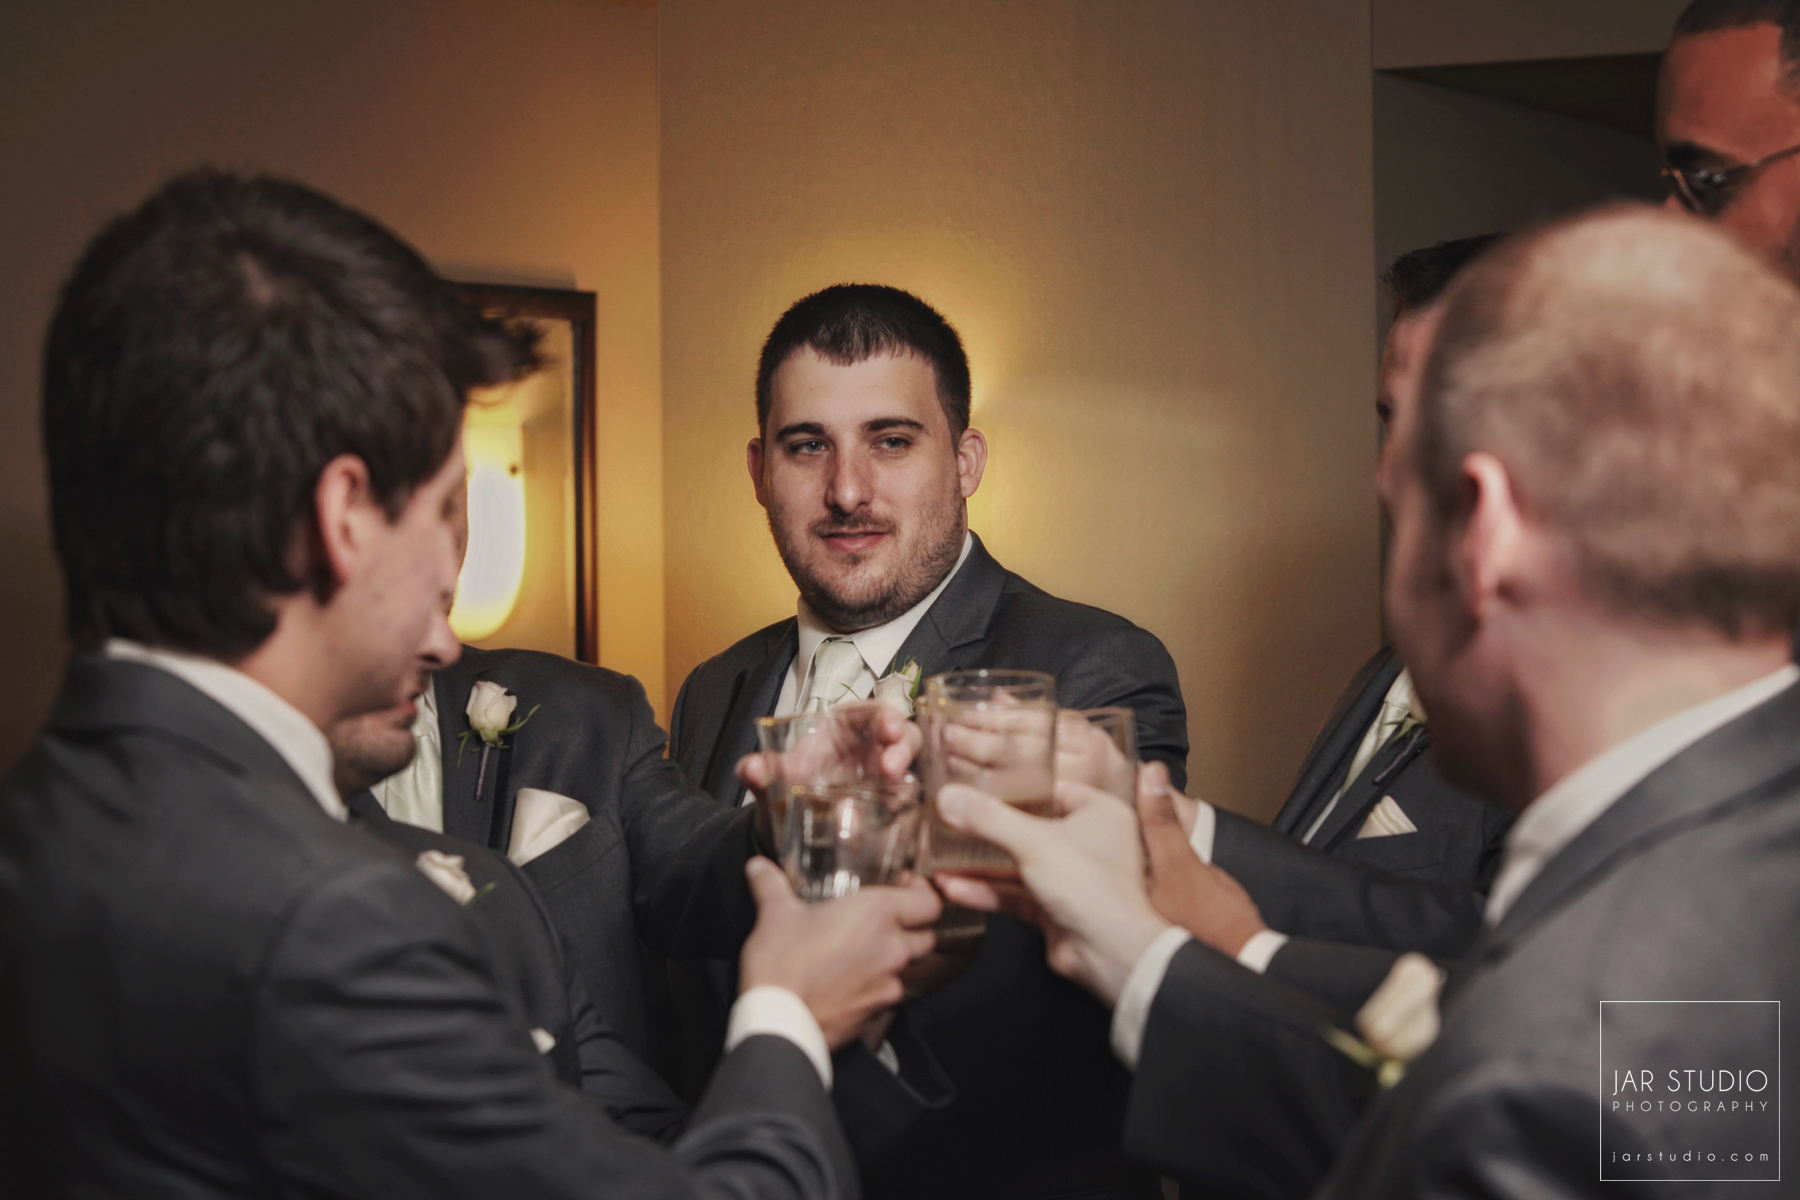 11-wedding-day-fun-guys-jarstudio-photography-orlando.jpg